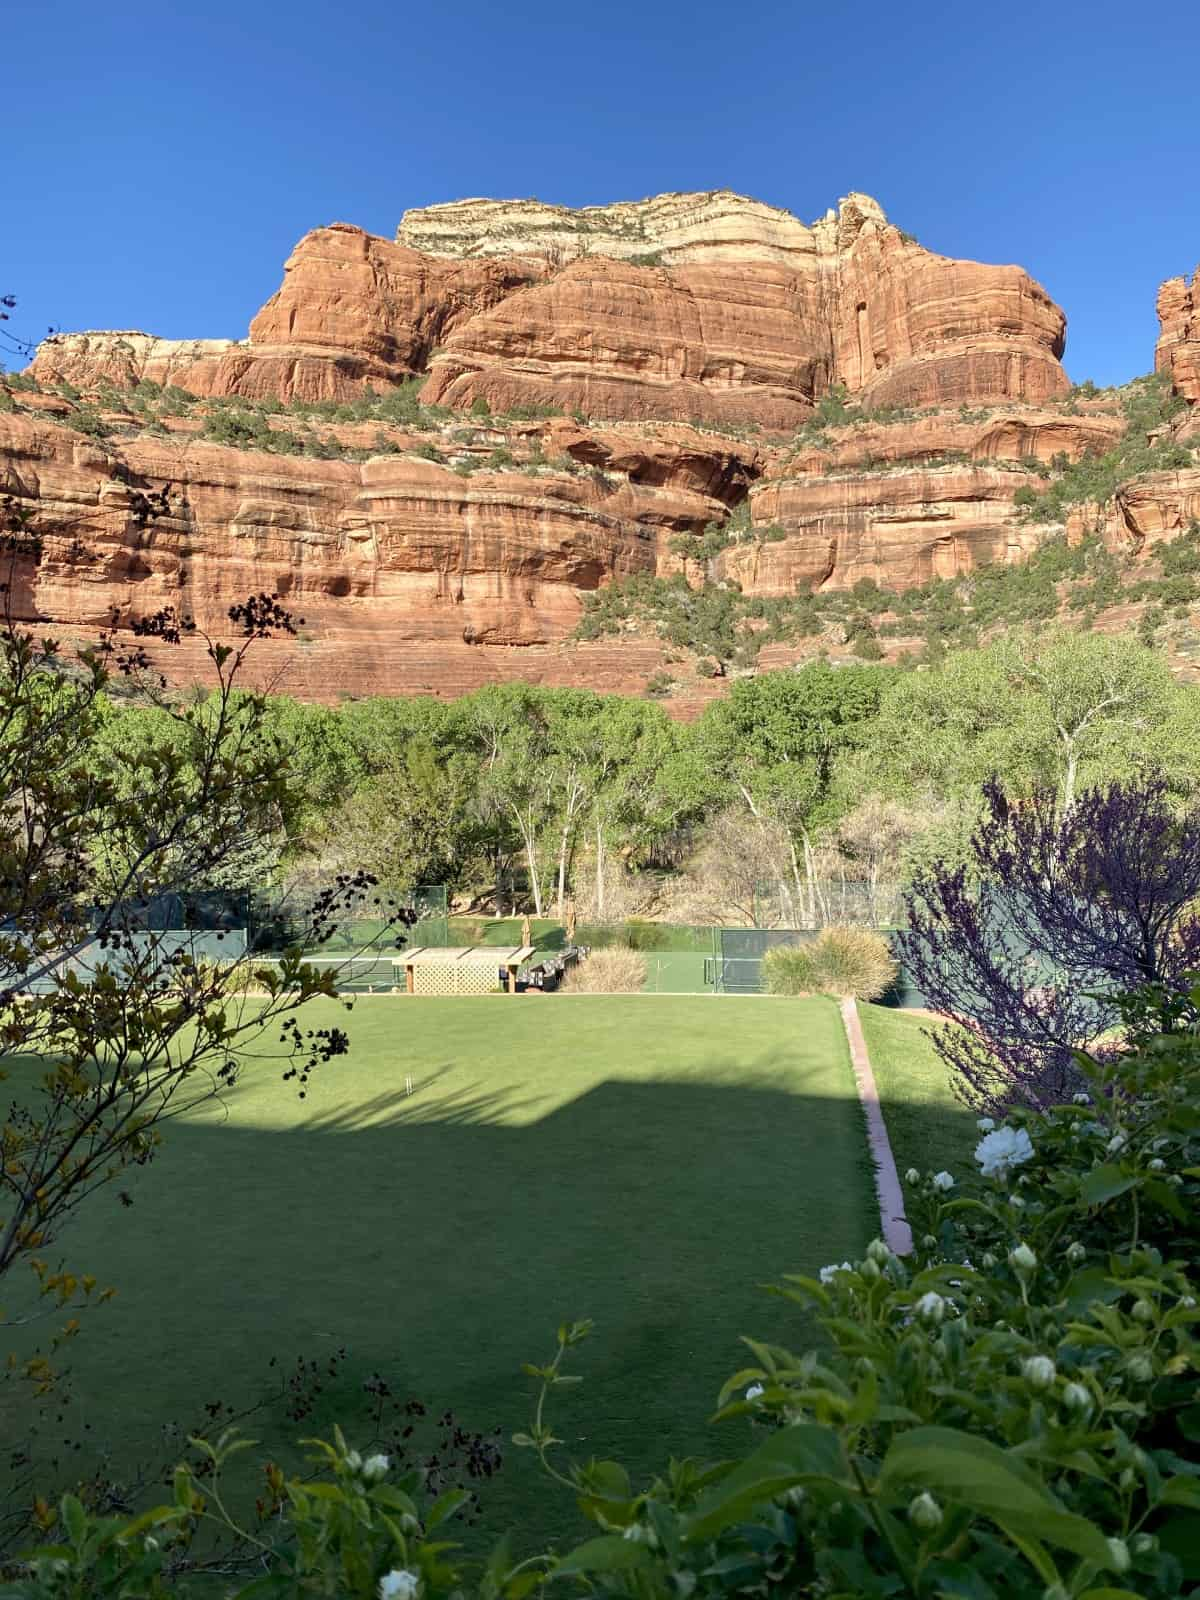 Sedona's Enchantment Resort review - there are tons of activity options, including croquet, pickle ball, bocce, and tennis